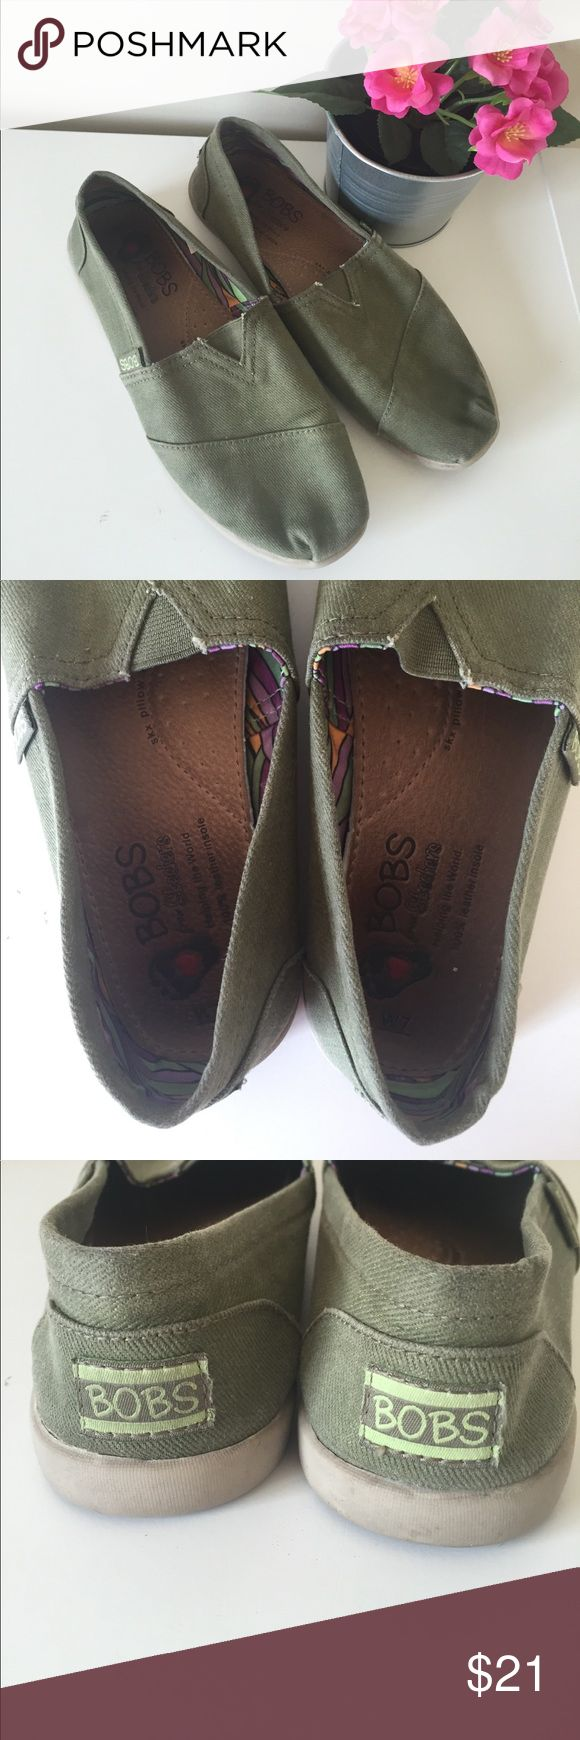 BOBS shoes Similar to TOMS. Slip on, olive green. Great used condition! Size 7. BOBS Shoes